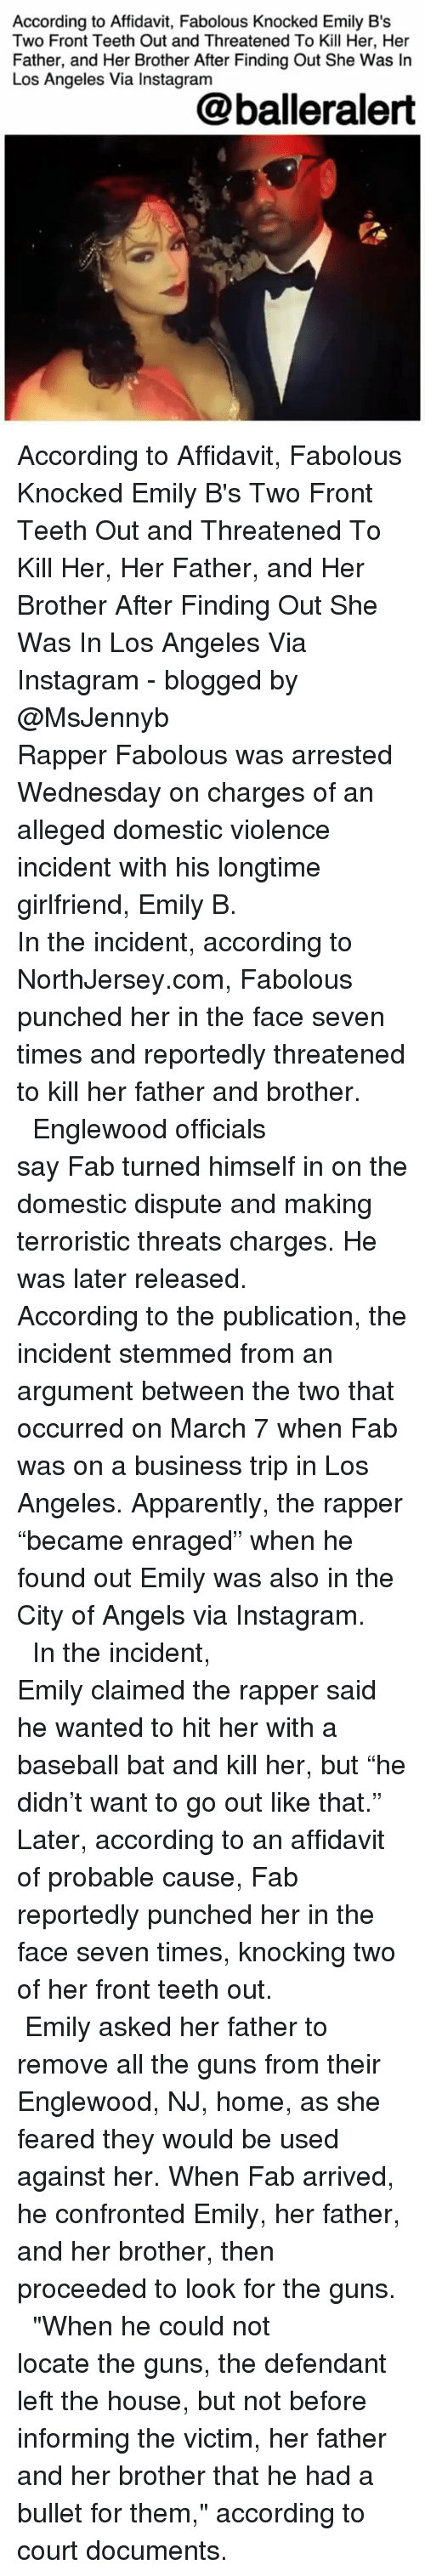 "Apparently, Baseball, and Fabolous: According to Affidavit, Fabolous Knocked Emily B's  Two Front Teeth Out and Threatened To Kill Her, Her  Father, and Her Brother After Finding Out She Was In  Los Angeles Via Instagram  @balleralert According to Affidavit, Fabolous Knocked Emily B's Two Front Teeth Out and Threatened To Kill Her, Her Father, and Her Brother After Finding Out She Was In Los Angeles Via Instagram - blogged by @MsJennyb ⠀⠀⠀⠀⠀⠀⠀⠀⠀ ⠀⠀⠀⠀⠀⠀⠀⠀⠀ Rapper Fabolous was arrested Wednesday on charges of an alleged domestic violence incident with his longtime girlfriend, Emily B. ⠀⠀⠀⠀⠀⠀⠀⠀⠀ ⠀⠀⠀⠀⠀⠀⠀⠀⠀ In the incident, according to NorthJersey.com, Fabolous punched her in the face seven times and reportedly threatened to kill her father and brother. ⠀⠀⠀⠀⠀⠀⠀⠀⠀ ⠀⠀⠀⠀⠀⠀⠀⠀⠀ Englewood officials say Fab turned himself in on the domestic dispute and making terroristic threats charges. He was later released. ⠀⠀⠀⠀⠀⠀⠀⠀⠀ ⠀⠀⠀⠀⠀⠀⠀⠀⠀ According to the publication, the incident stemmed from an argument between the two that occurred on March 7 when Fab was on a business trip in Los Angeles. Apparently, the rapper ""became enraged"" when he found out Emily was also in the City of Angels via Instagram. ⠀⠀⠀⠀⠀⠀⠀⠀⠀ ⠀⠀⠀⠀⠀⠀⠀⠀⠀ In the incident, Emily claimed the rapper said he wanted to hit her with a baseball bat and kill her, but ""he didn't want to go out like that."" Later, according to an affidavit of probable cause, Fab reportedly punched her in the face seven times, knocking two of her front teeth out. ⠀⠀⠀⠀⠀⠀⠀⠀⠀ ⠀⠀⠀⠀⠀⠀⠀⠀⠀ Emily asked her father to remove all the guns from their Englewood, NJ, home, as she feared they would be used against her. When Fab arrived, he confronted Emily, her father, and her brother, then proceeded to look for the guns. ⠀⠀⠀⠀⠀⠀⠀⠀⠀ ⠀⠀⠀⠀⠀⠀⠀⠀⠀ ""When he could not locate the guns, the defendant left the house, but not before informing the victim, her father and her brother that he had a bullet for them,"" according to court documents."